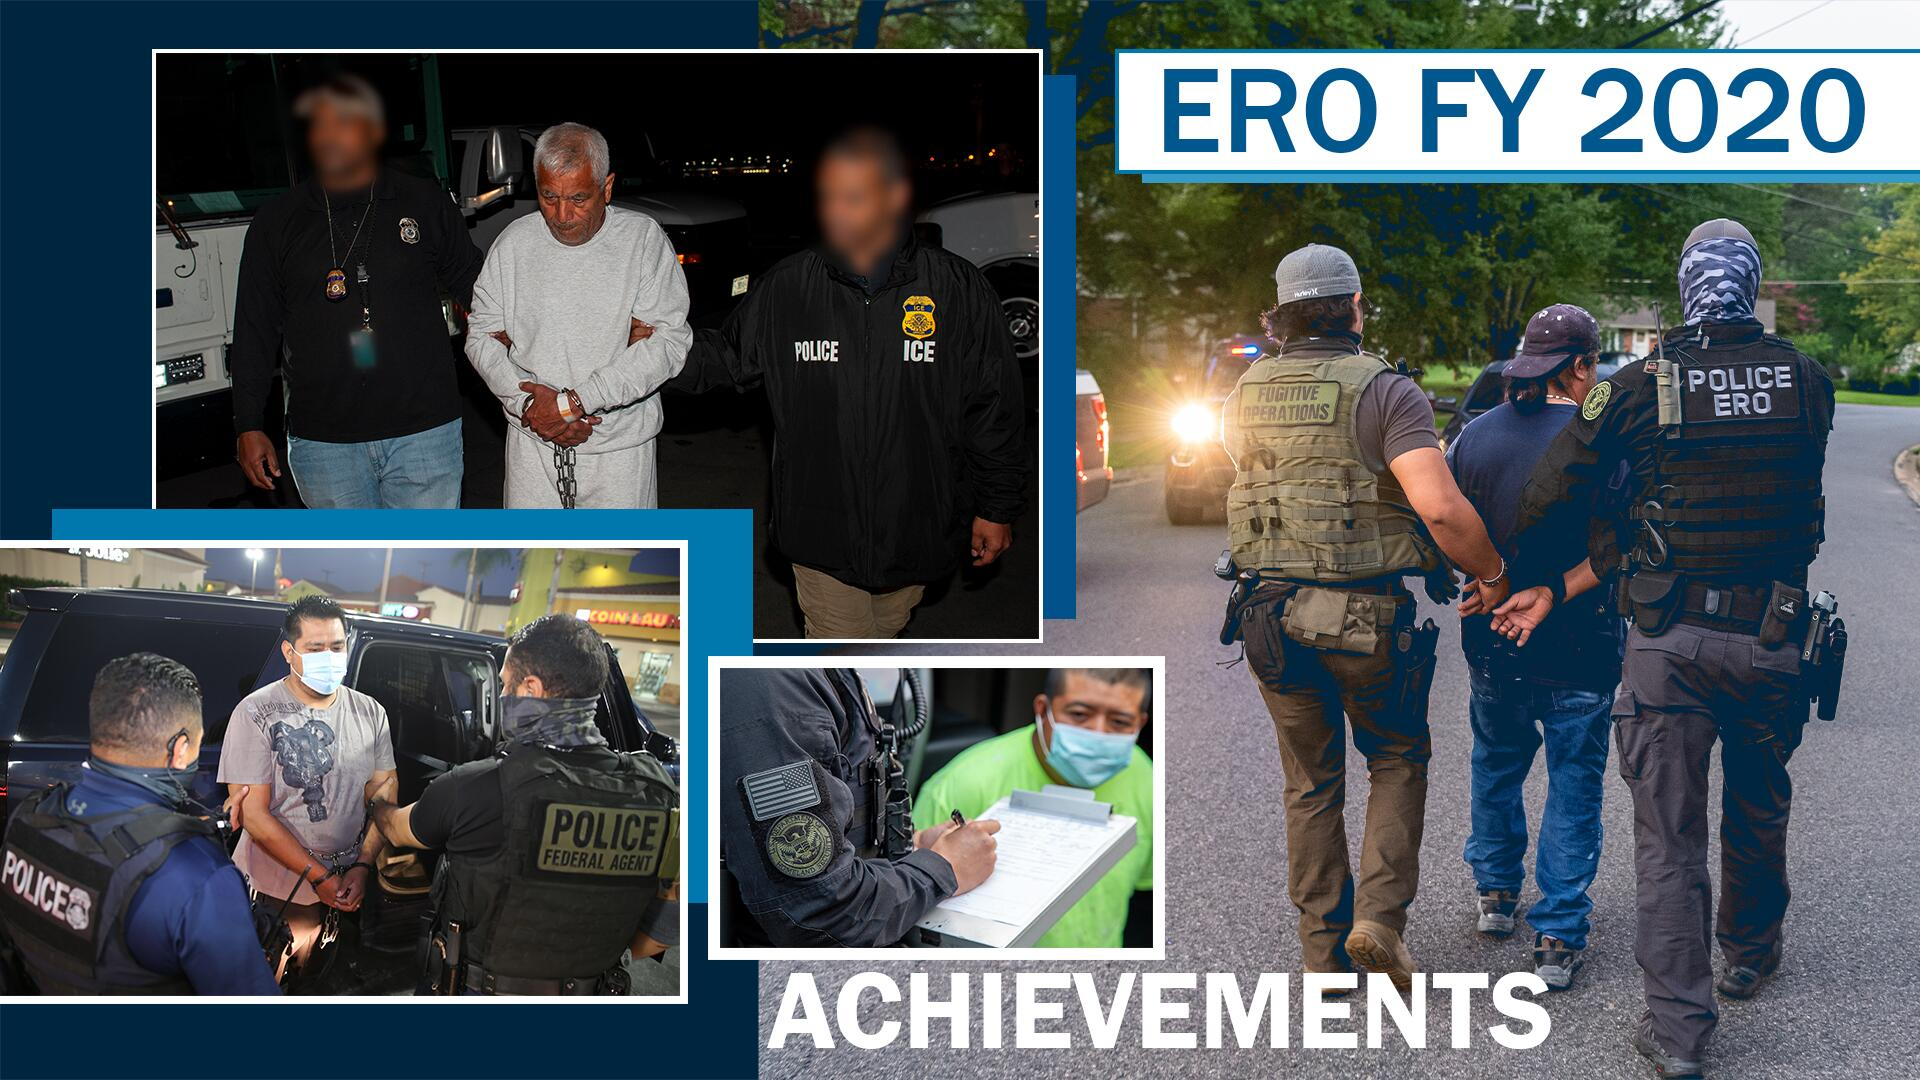 ERO FY 2020 Achievements